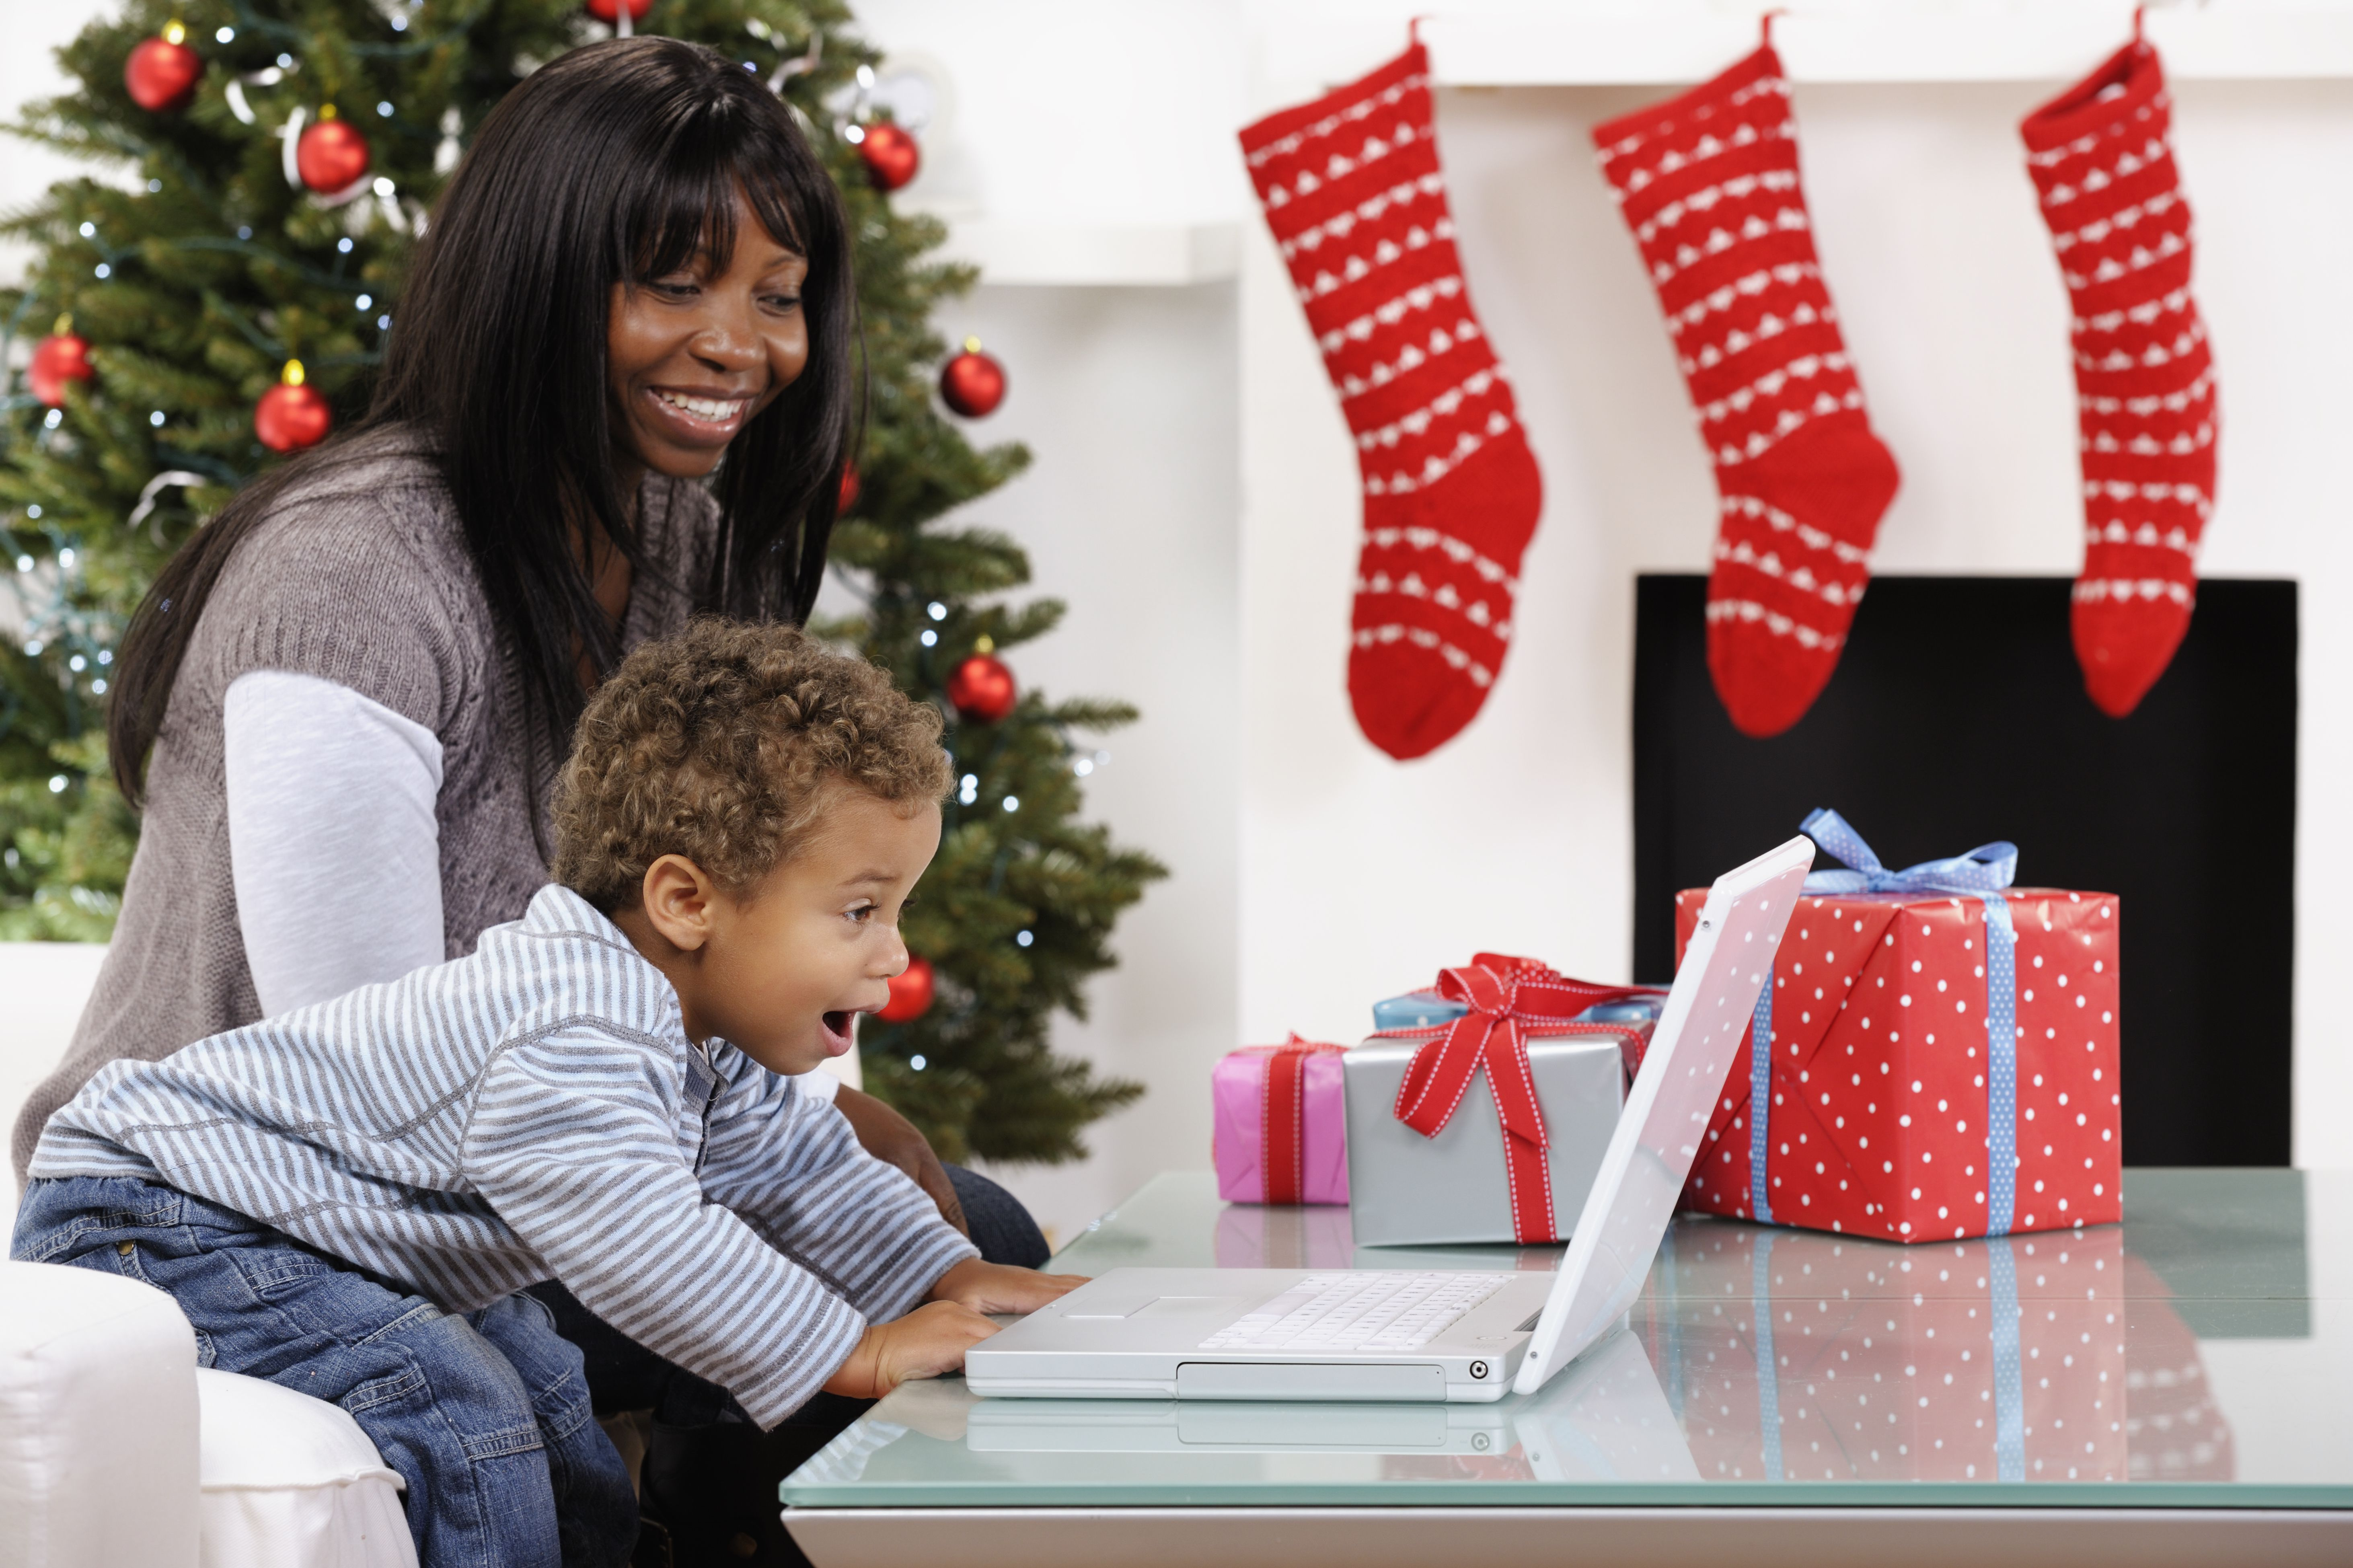 toddler excited while using computer with mother at christmas - Best Christmas Pandora Station